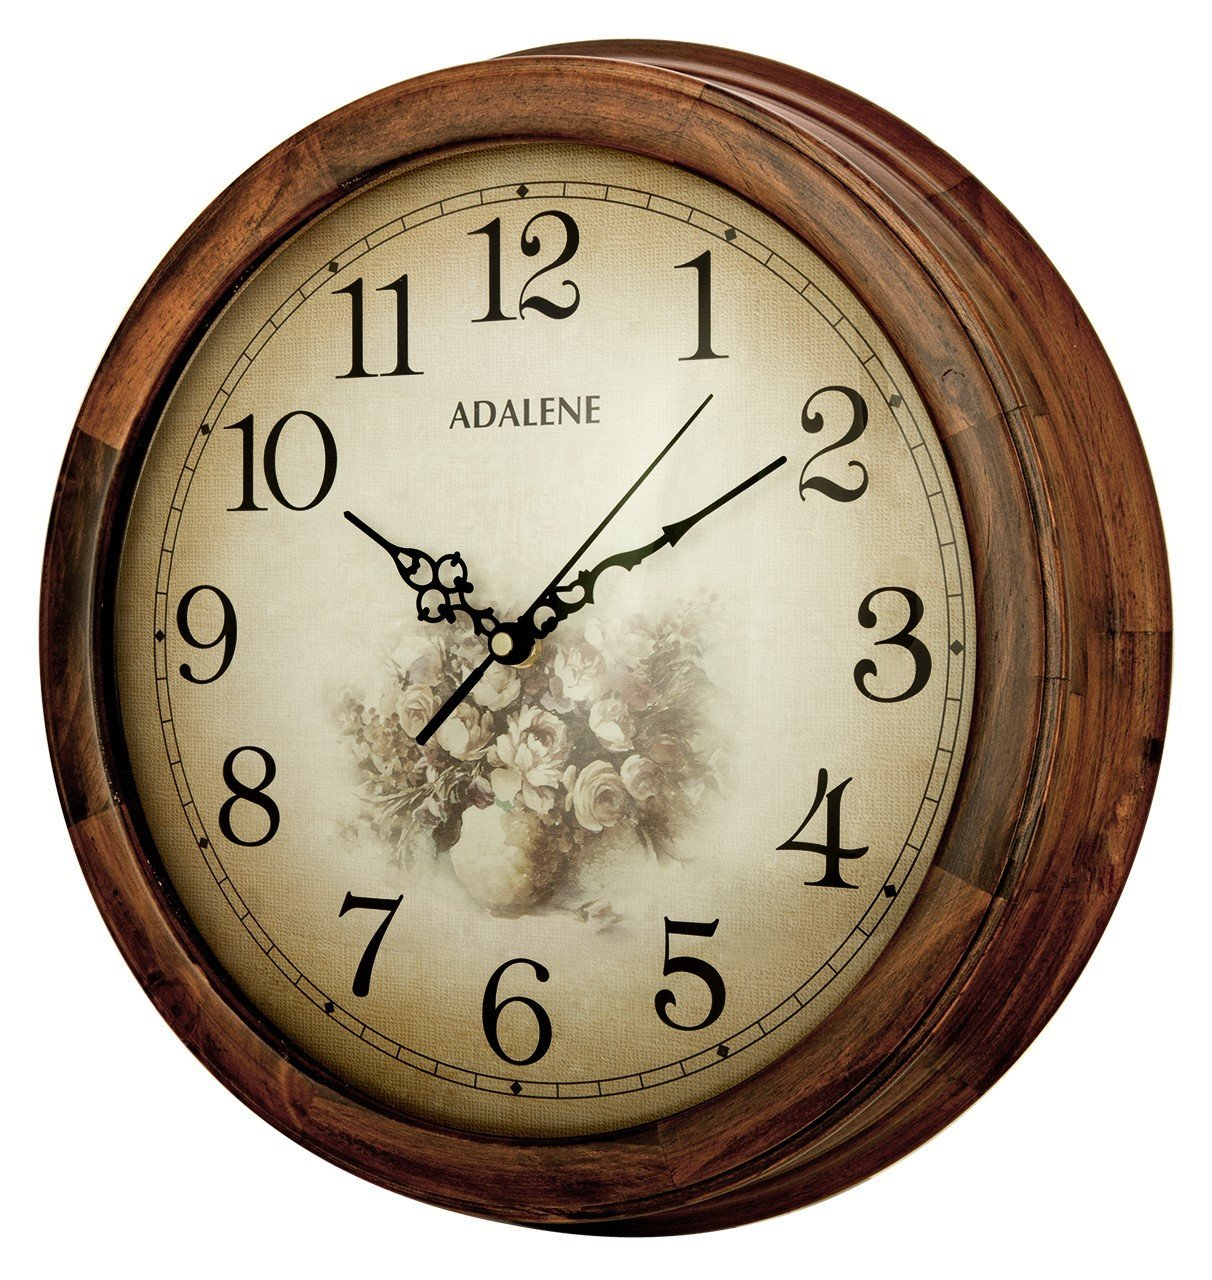 Adalene 14-Inch Wall Clock Large Decorative Living Room Clock - Quiet Battery Operated Quartz Analog Silent Wood Wall Clock - Round Sepia Flower Dial with Fancy Arabic Numerals, Wooden Frame